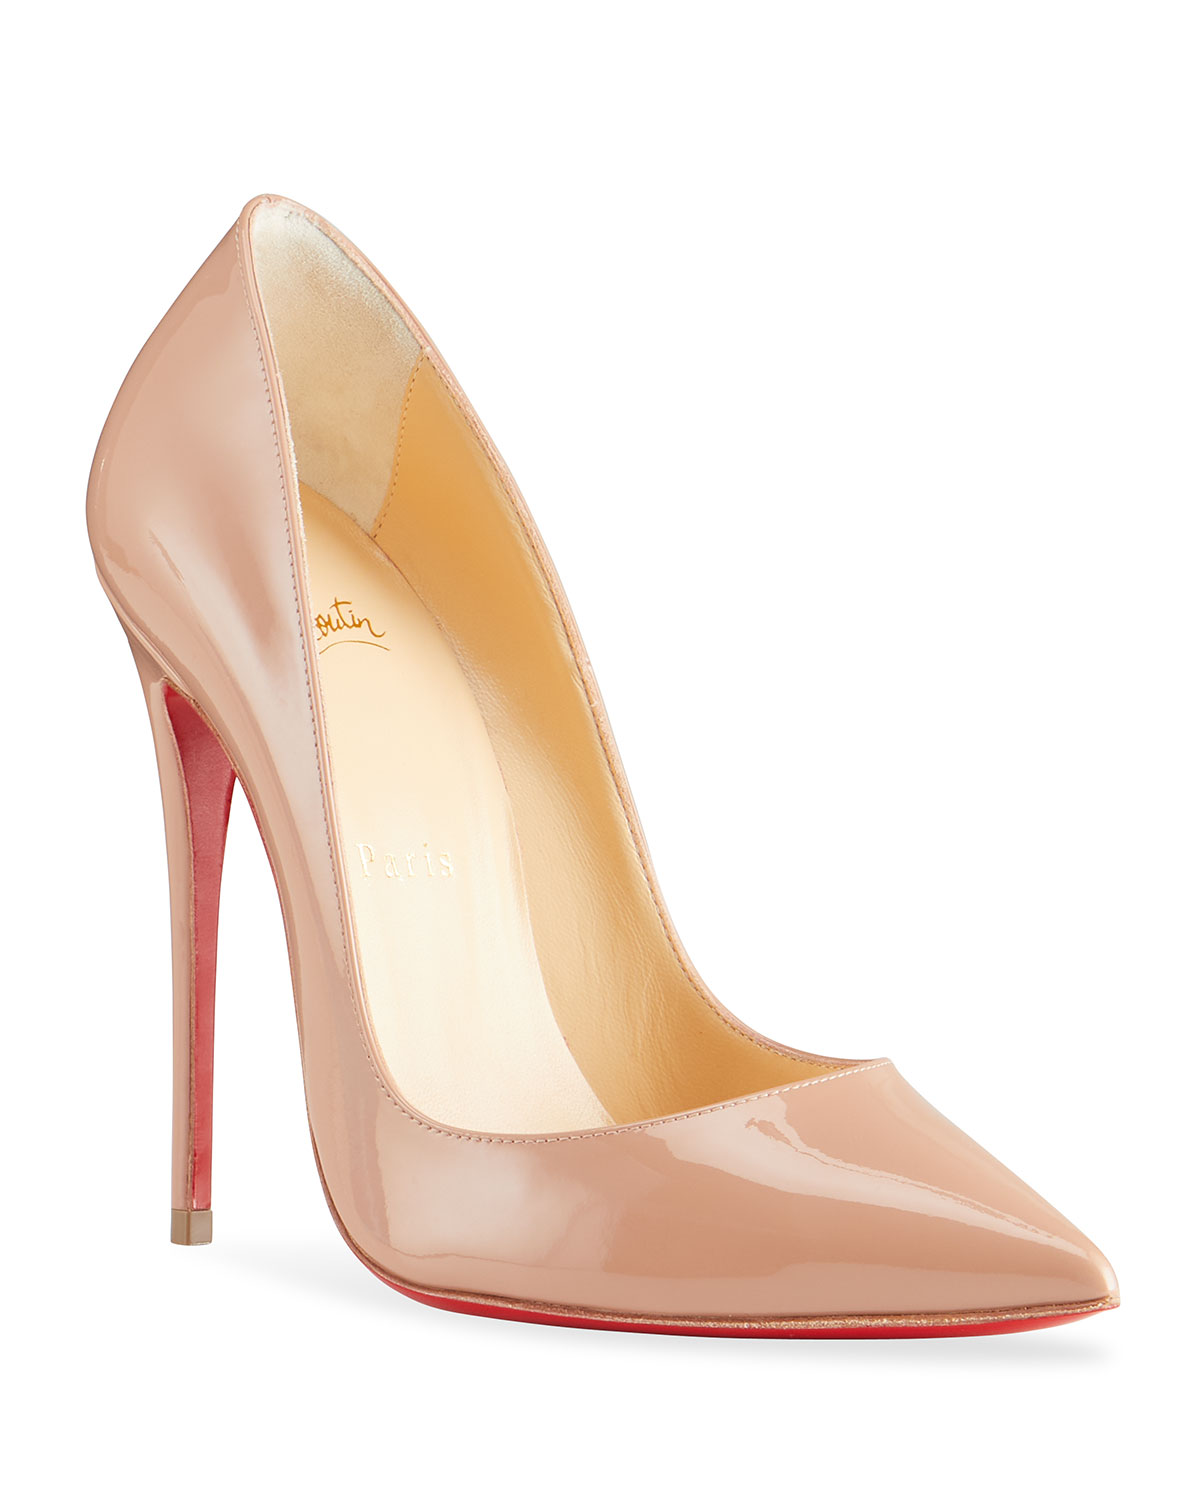 premium selection 608d8 794e5 So Kate Patent Pointed-Toe Red Sole Pump